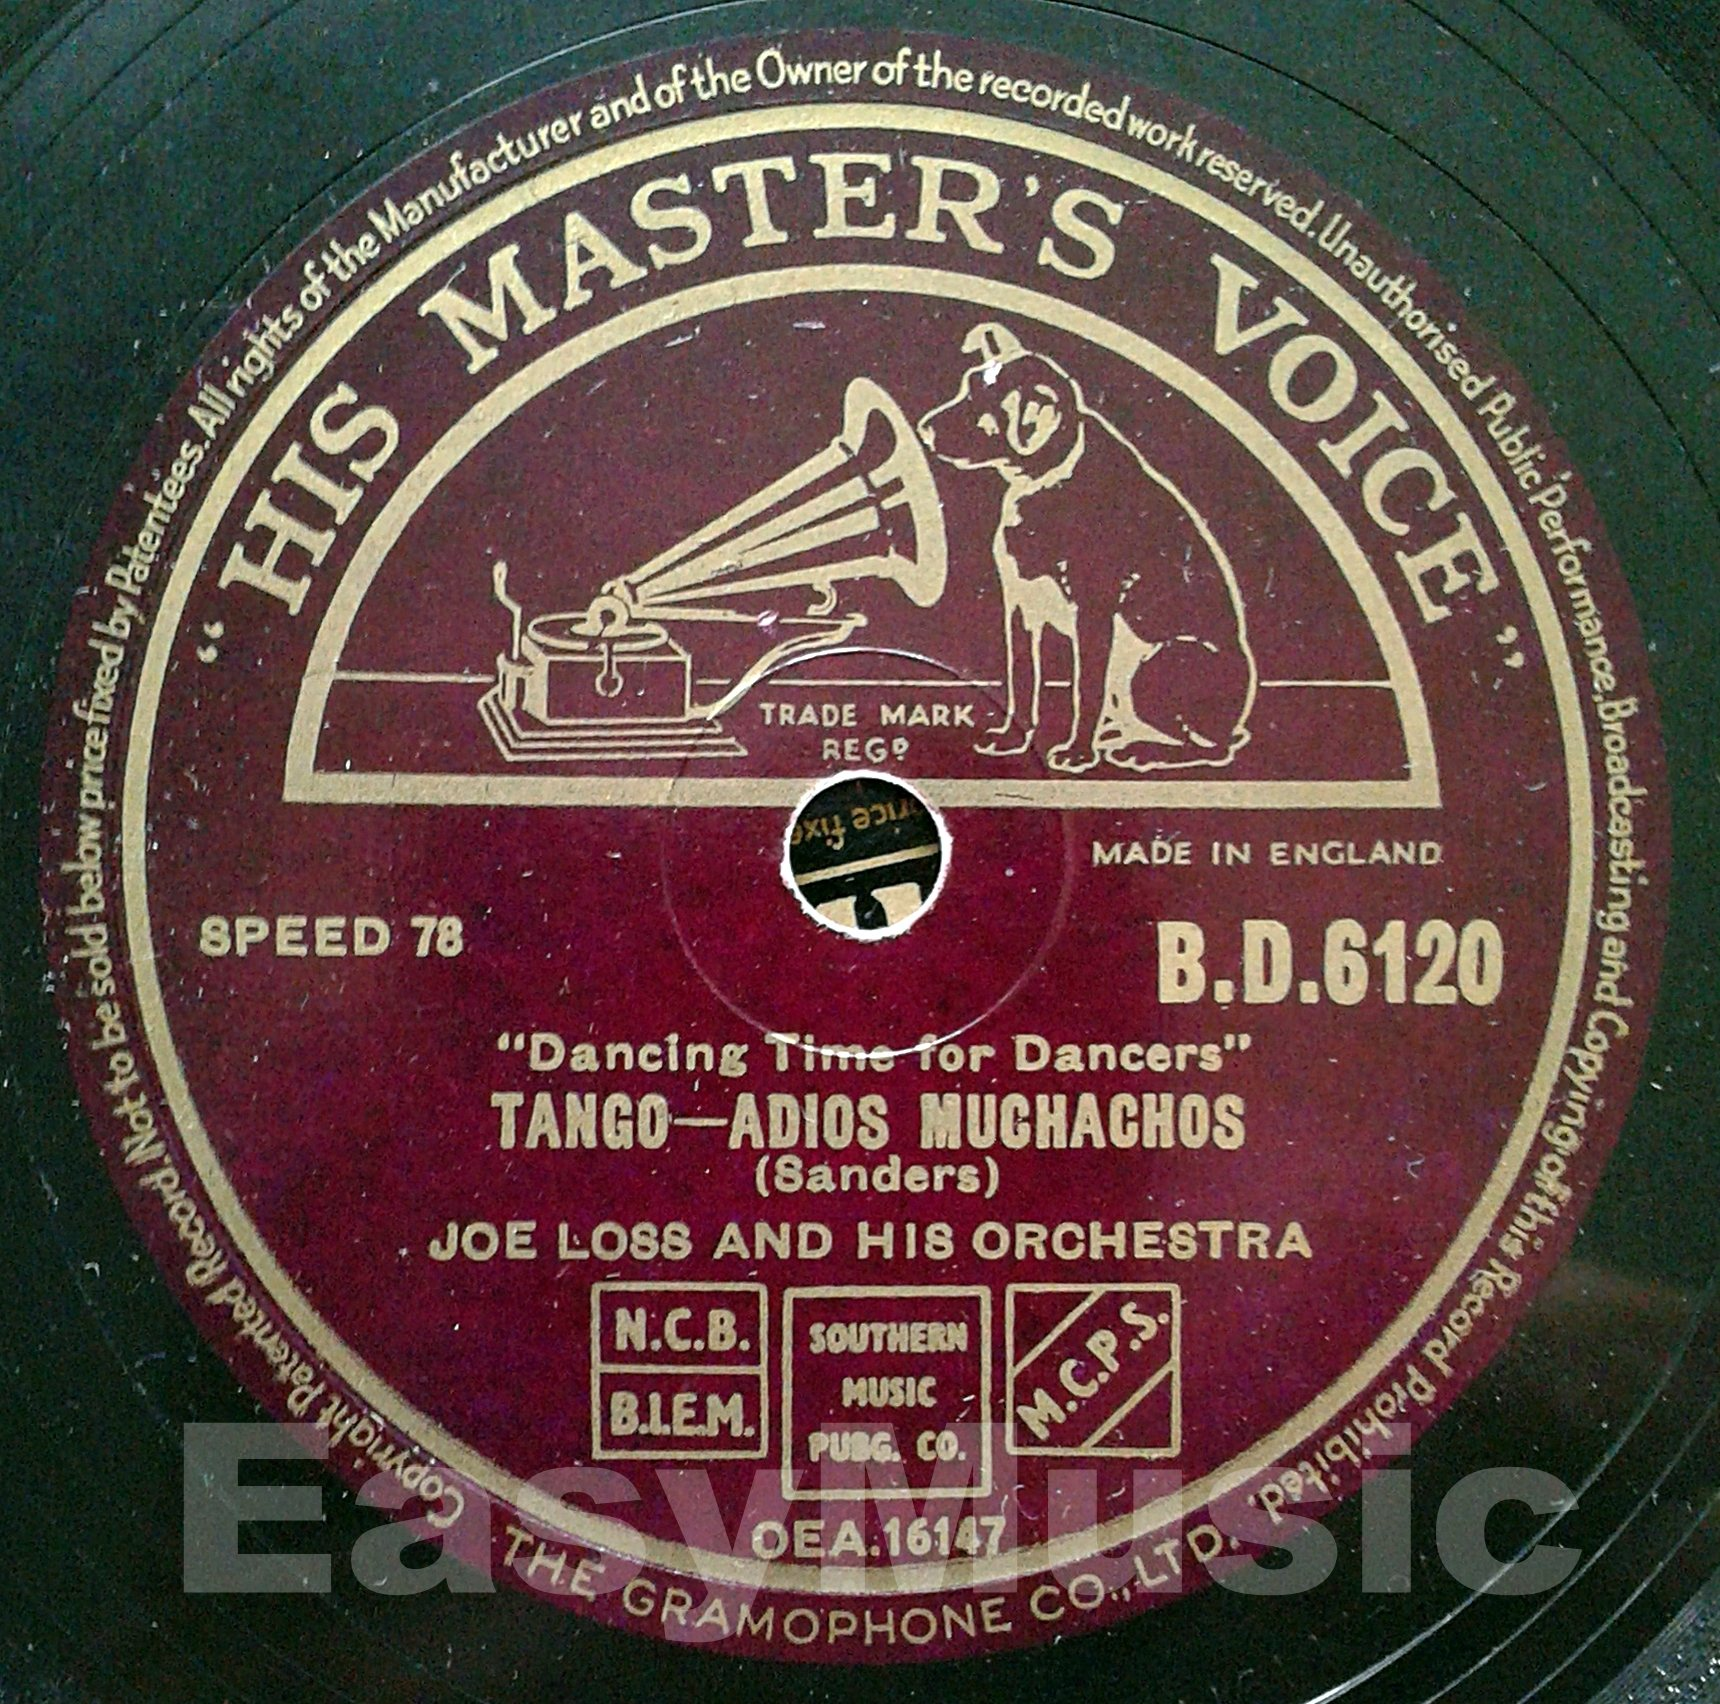 Saturday's concert on 78 rpm